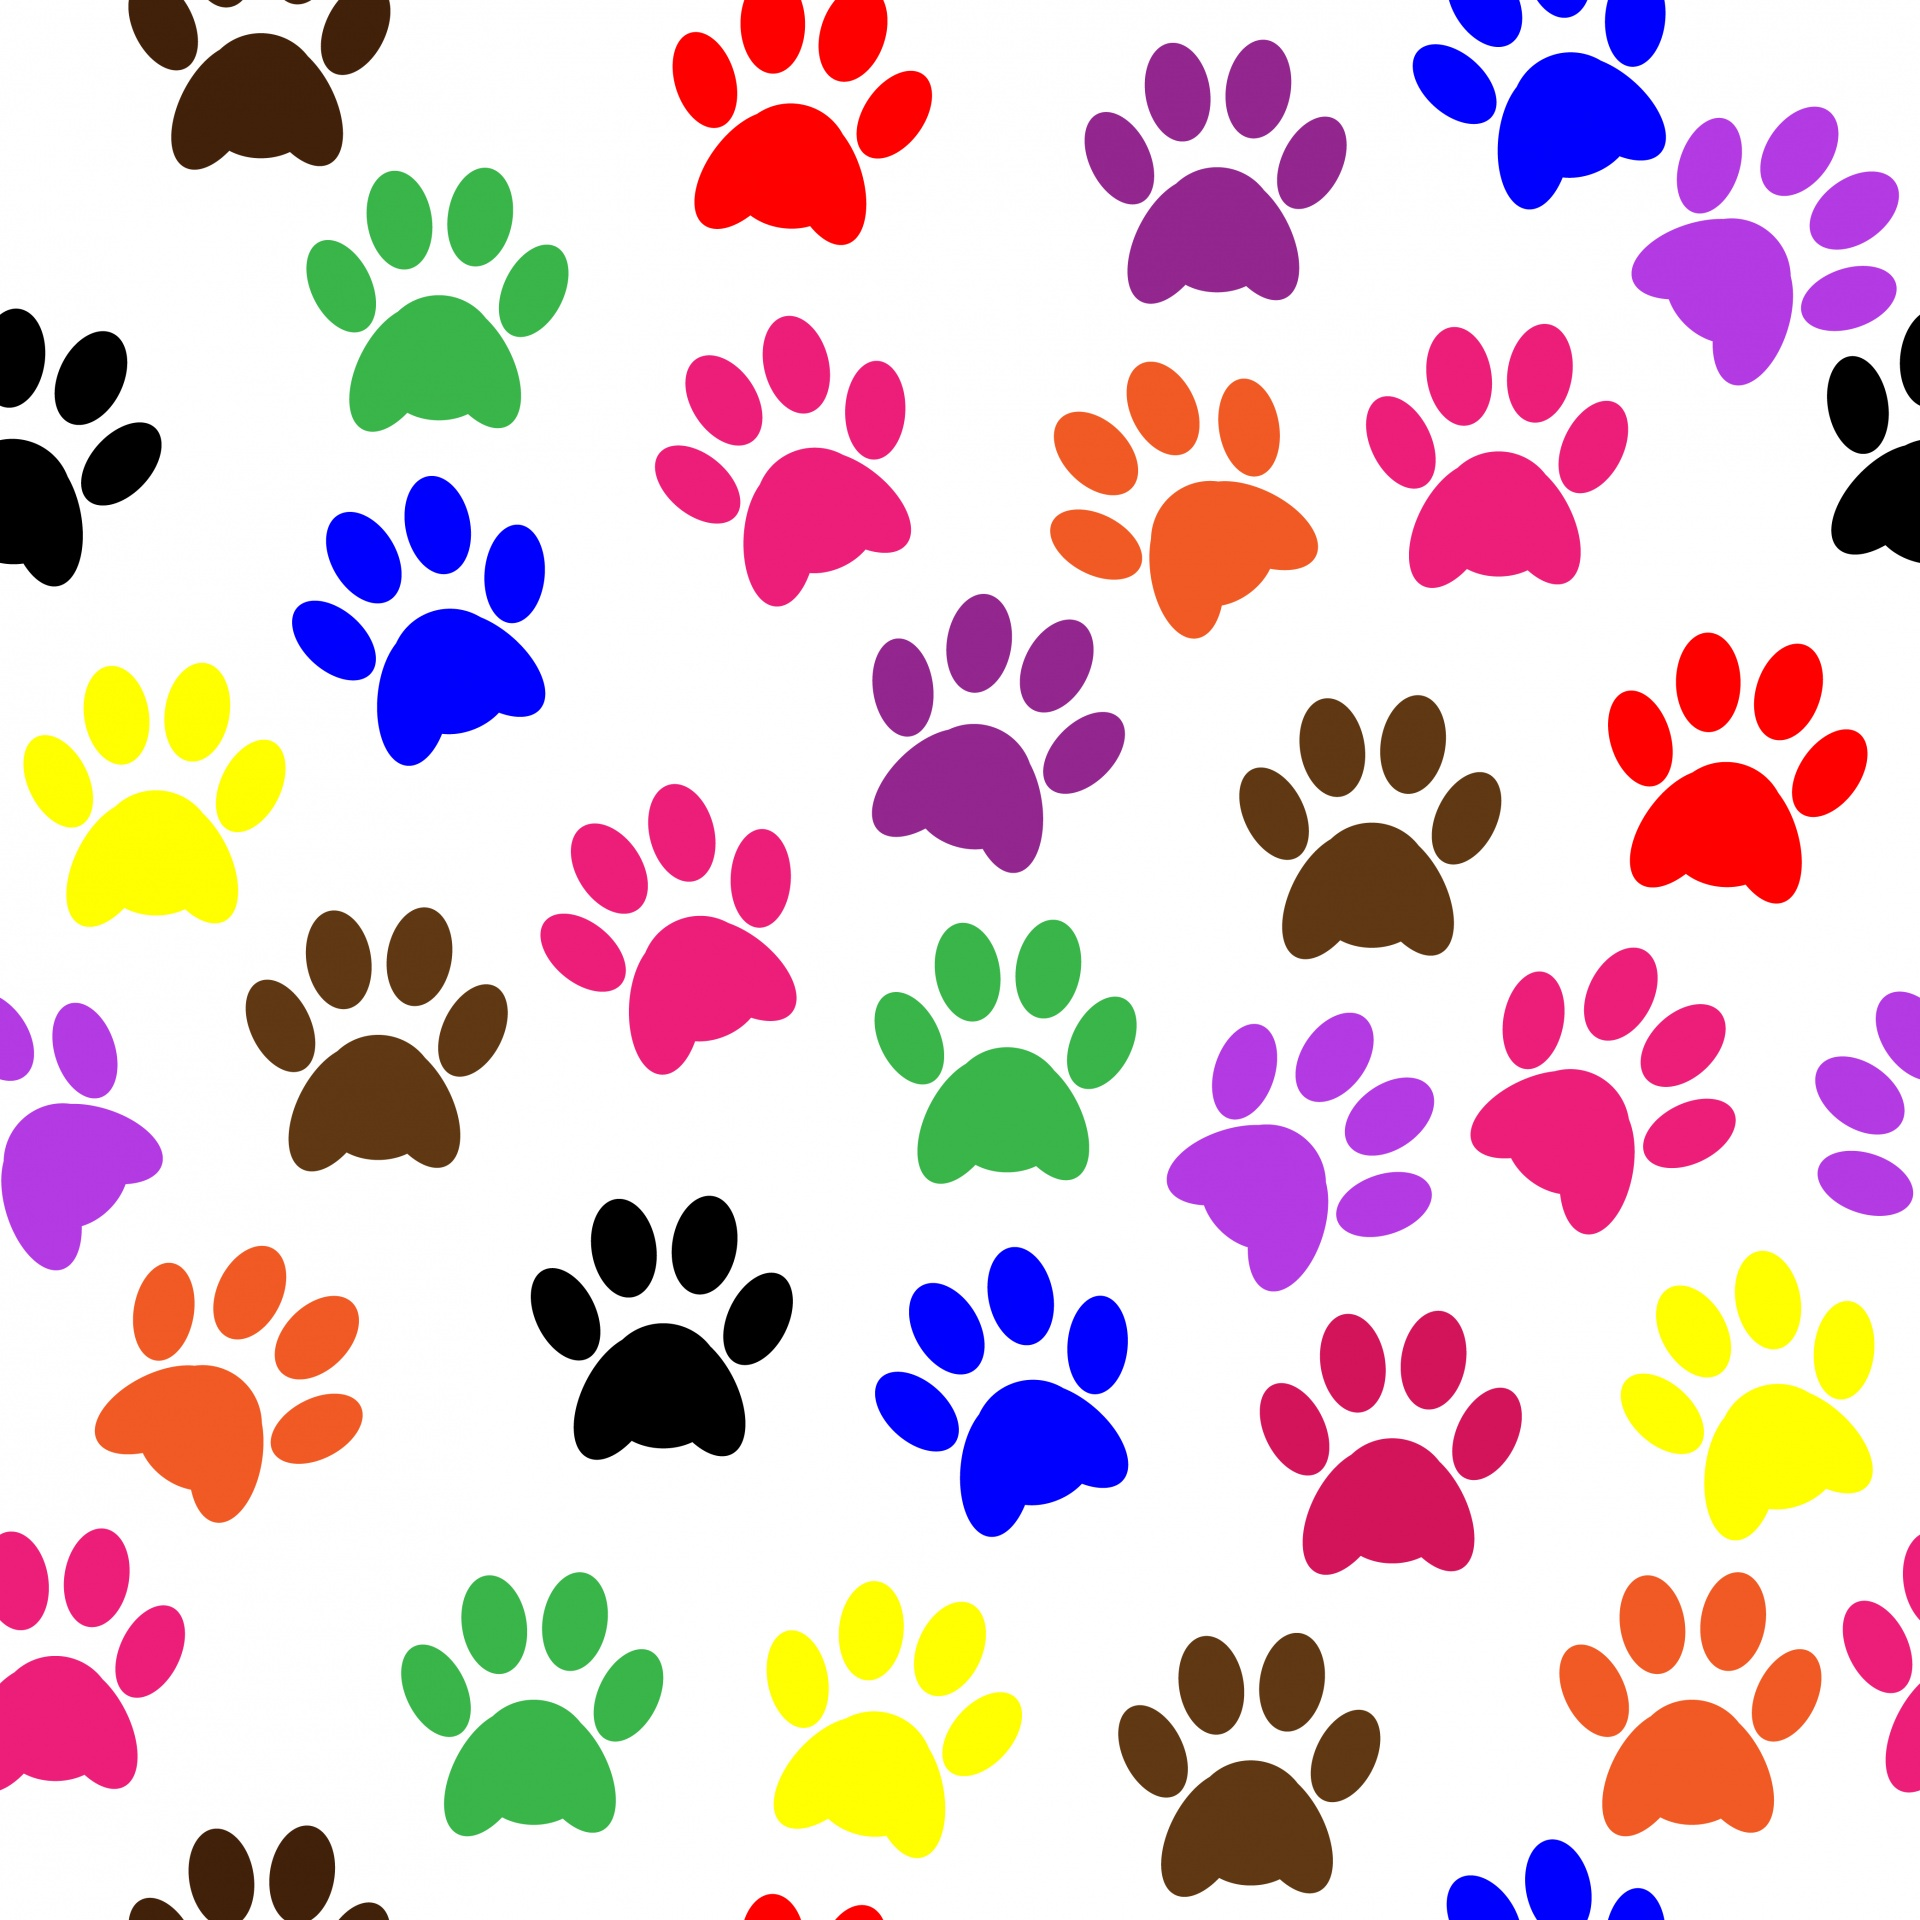 Paw Prints Colorful Wallpaper Free Stock Photo - Public Domain Pictures